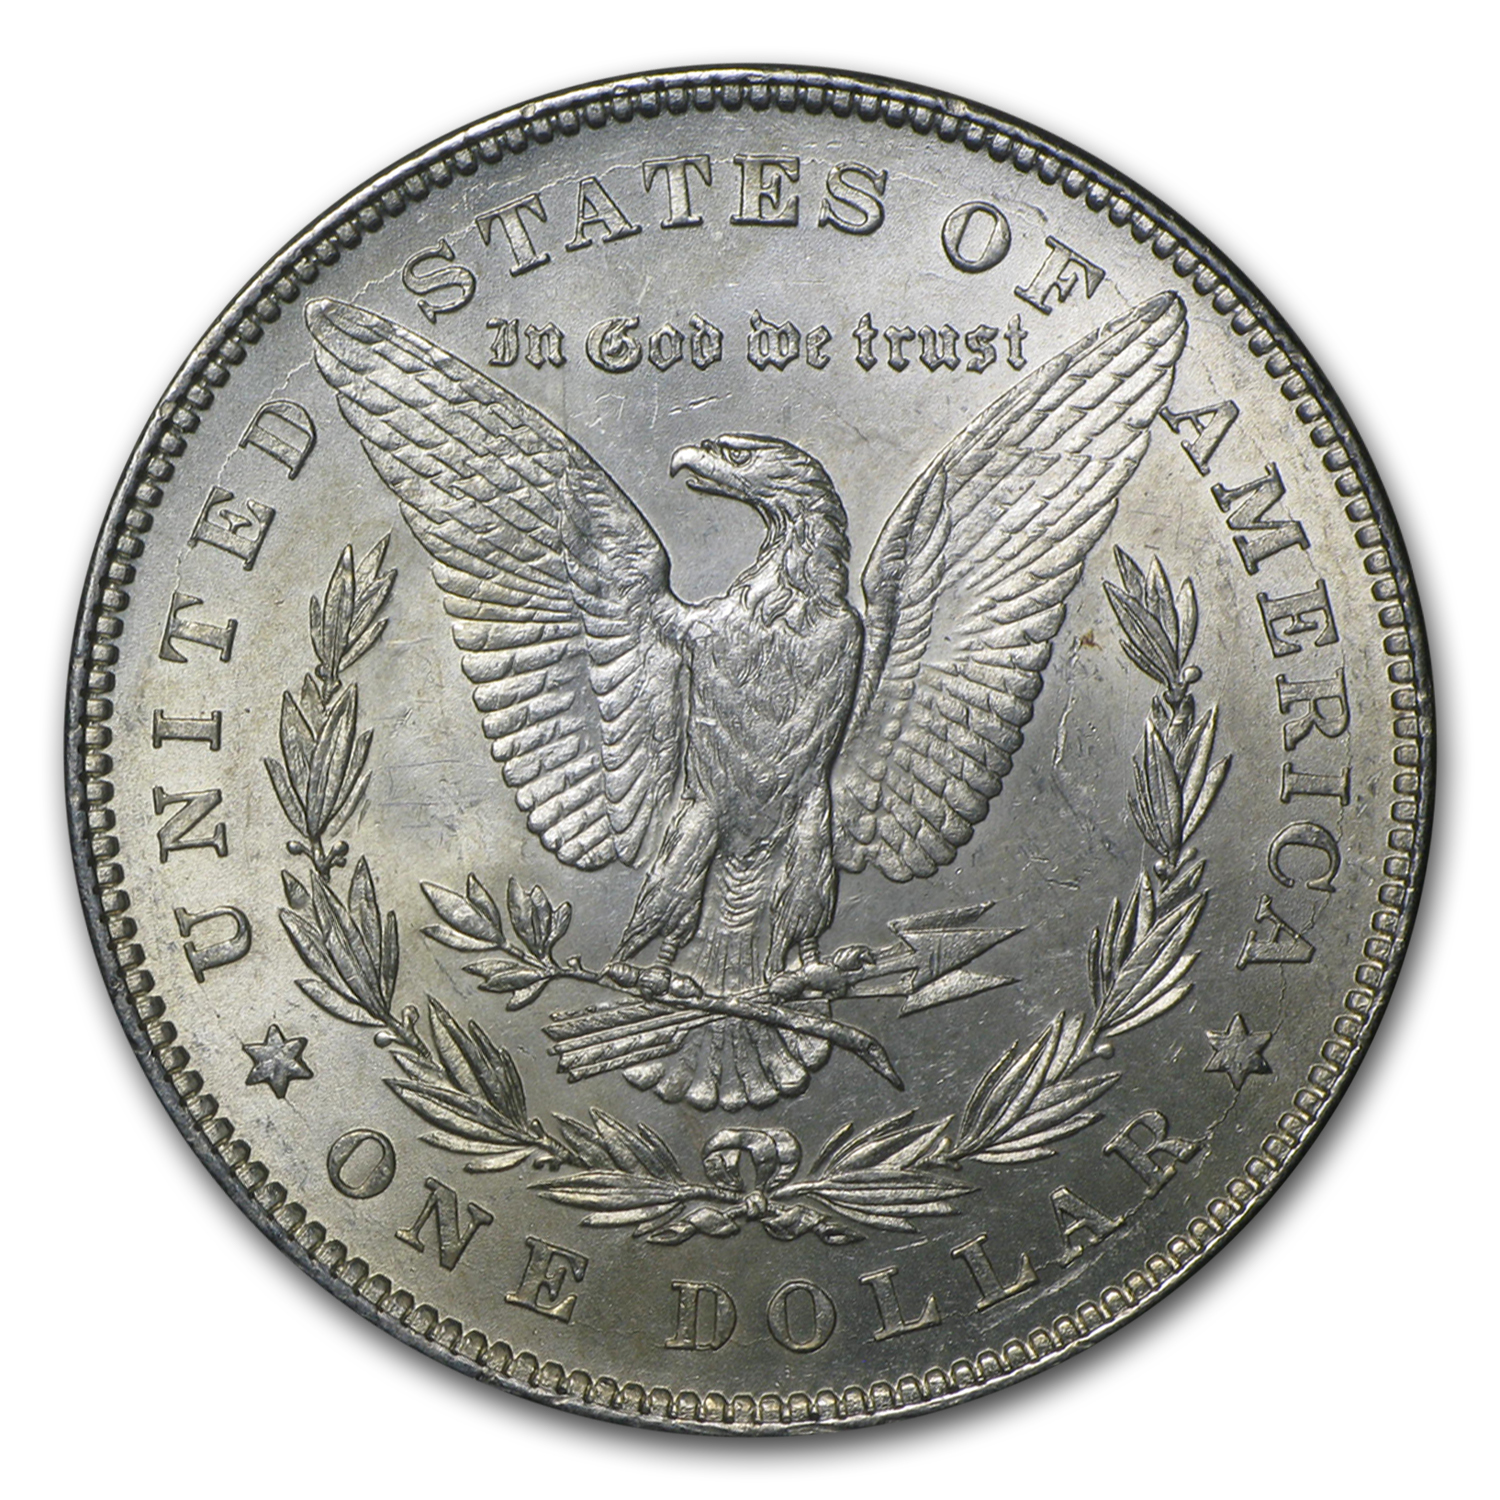 1878 Morgan Silver Dollar 7 Tailfeathers Rev of 78 BU